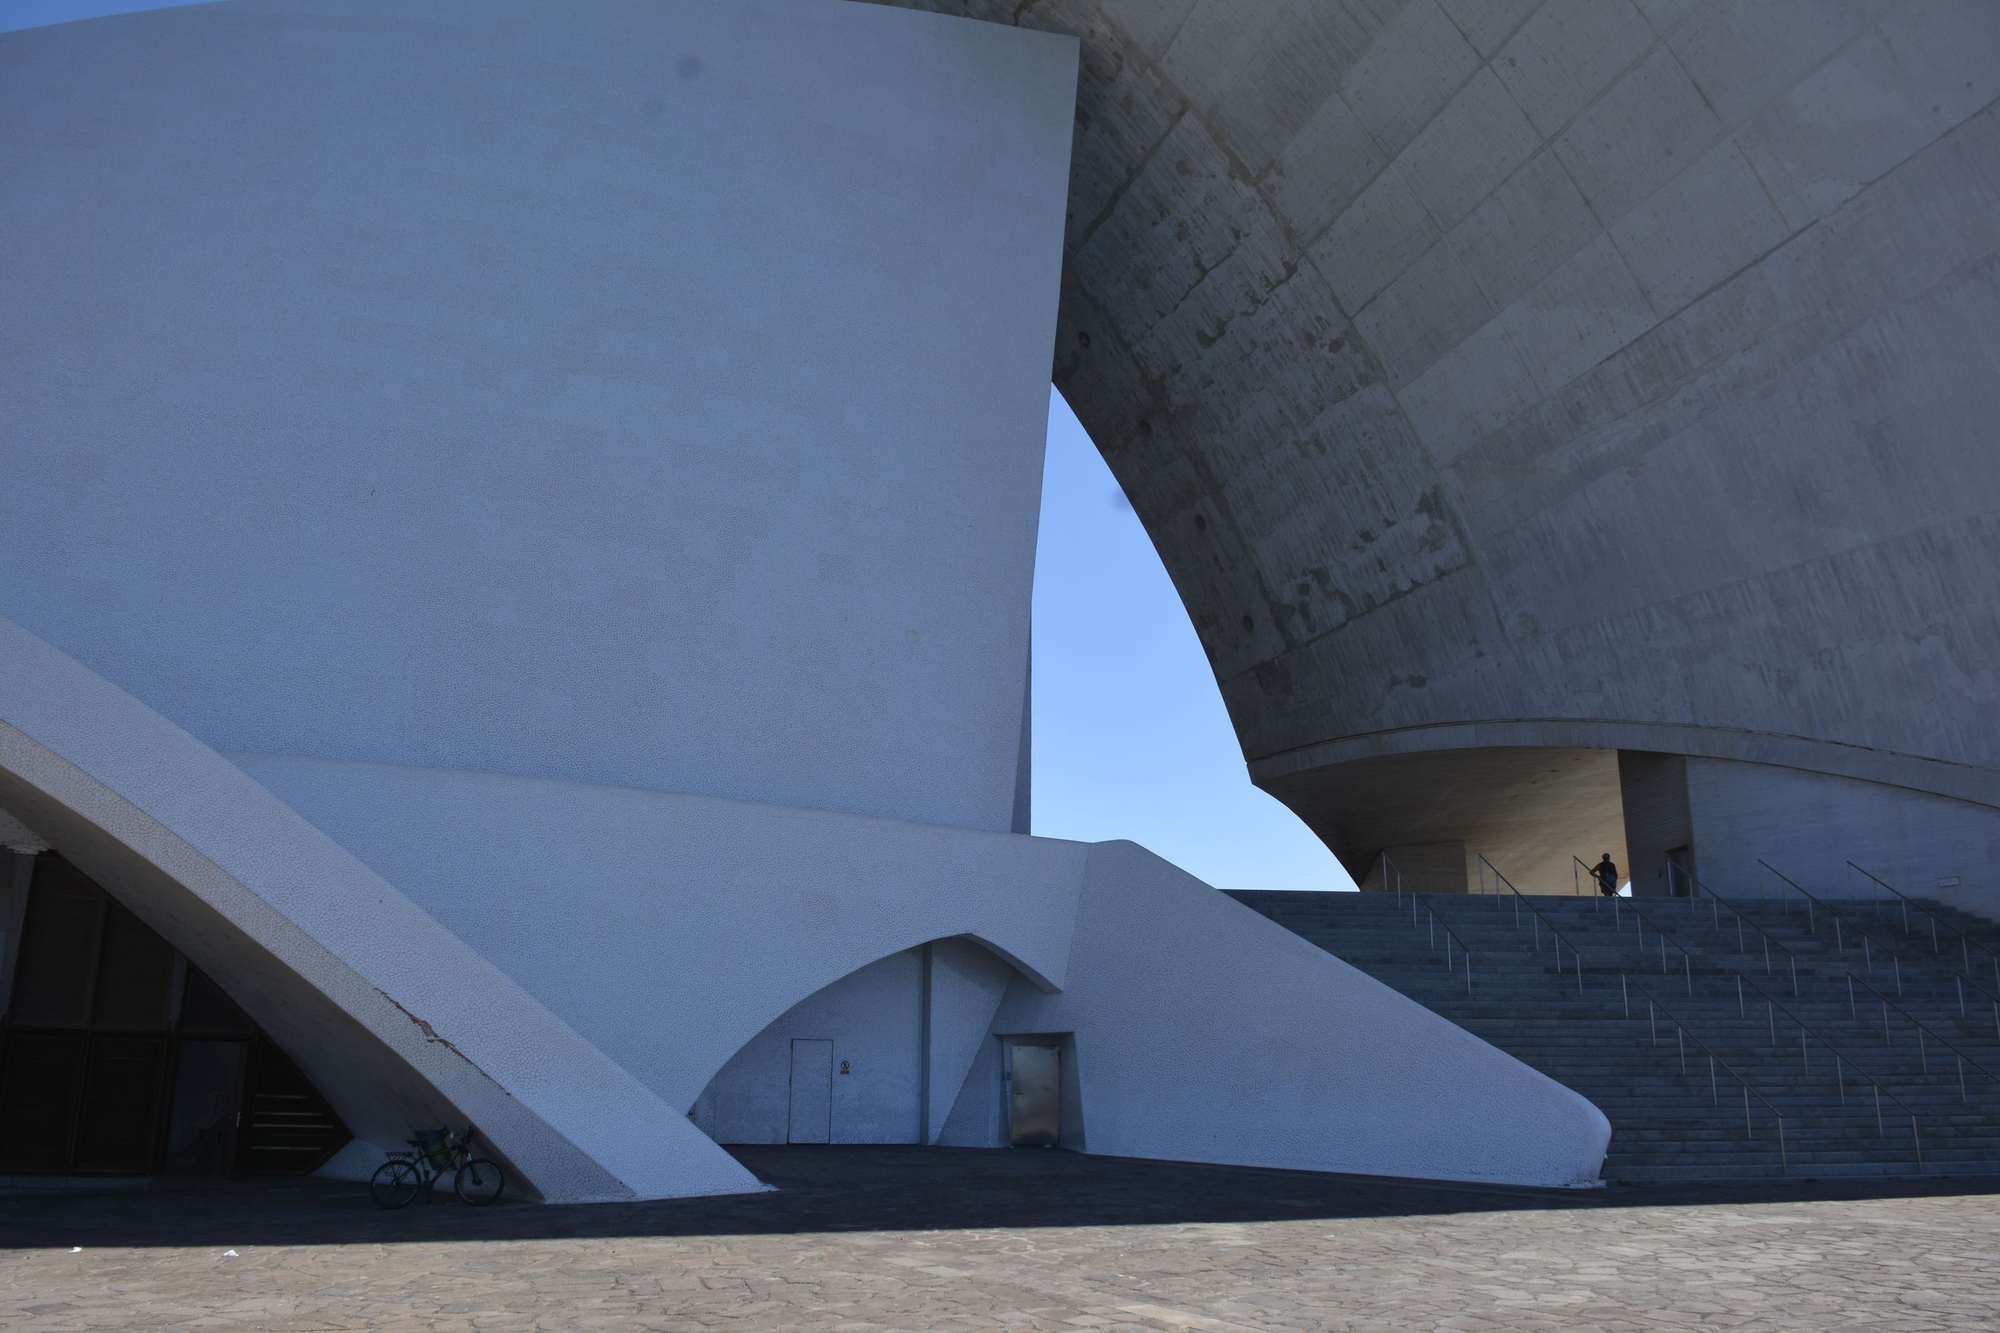 Auditorium-de-Santa-Cruz-Tenerife-architecture_05